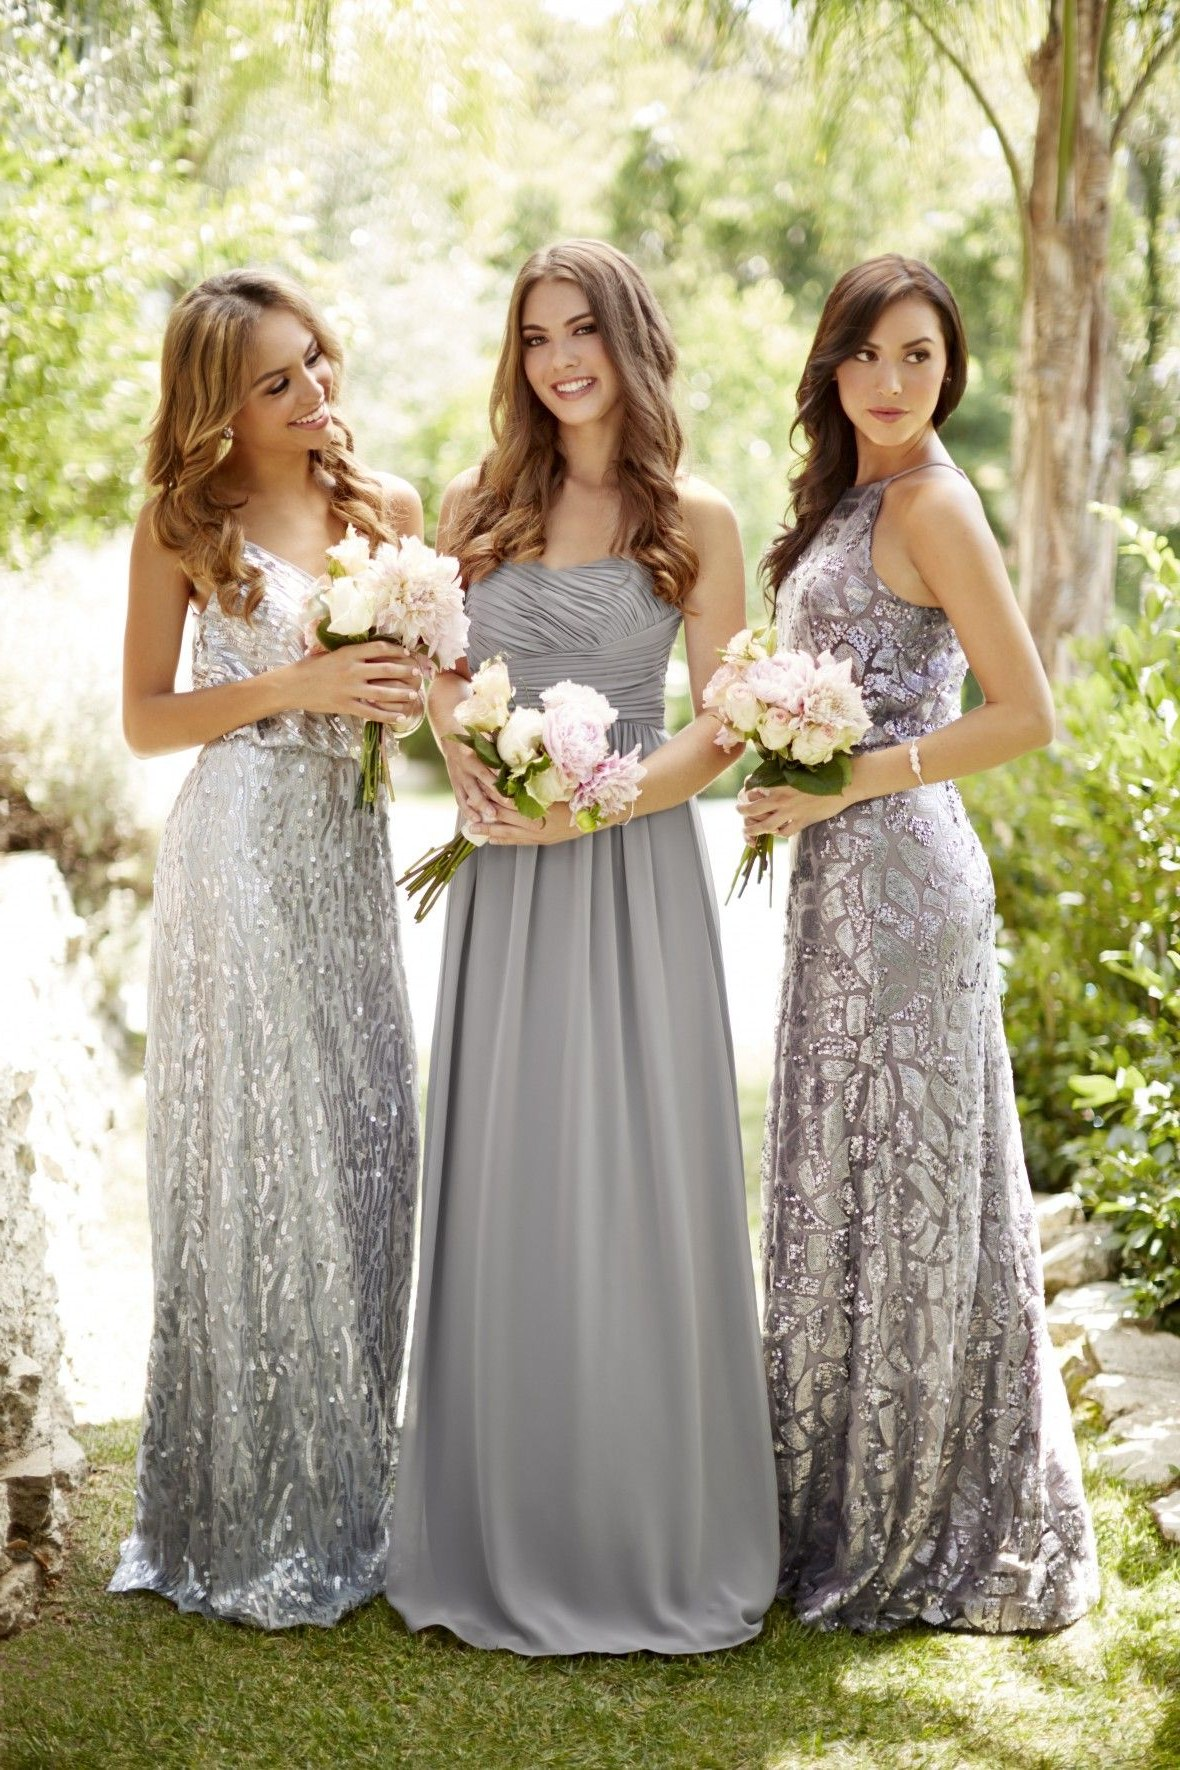 Model Design Bridesmaid Hijab U3dh Rent Gorgeous Designer Bridesmaids Dresses From Vow to Be